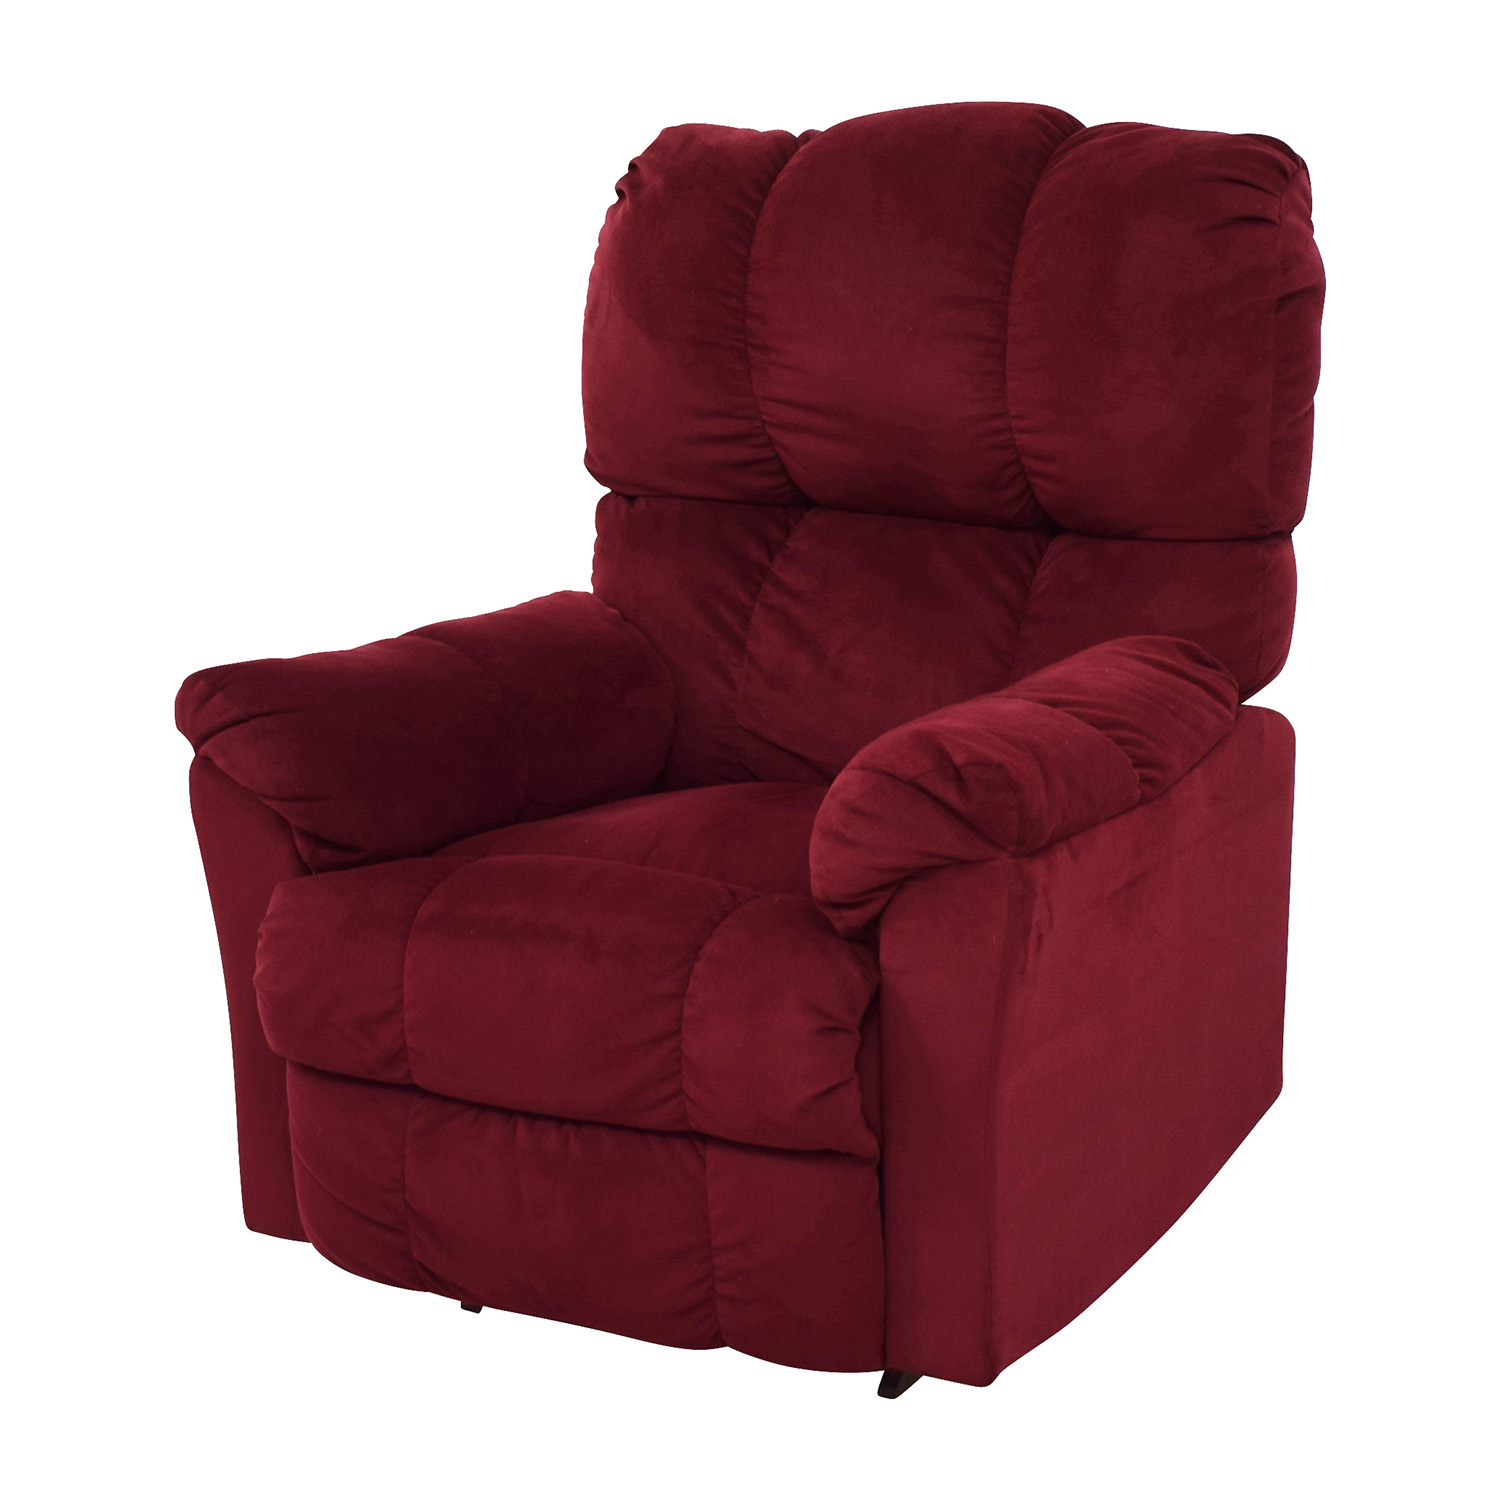 87 OFF  Macys Macys Red Recliner Arm Chair  Chairs